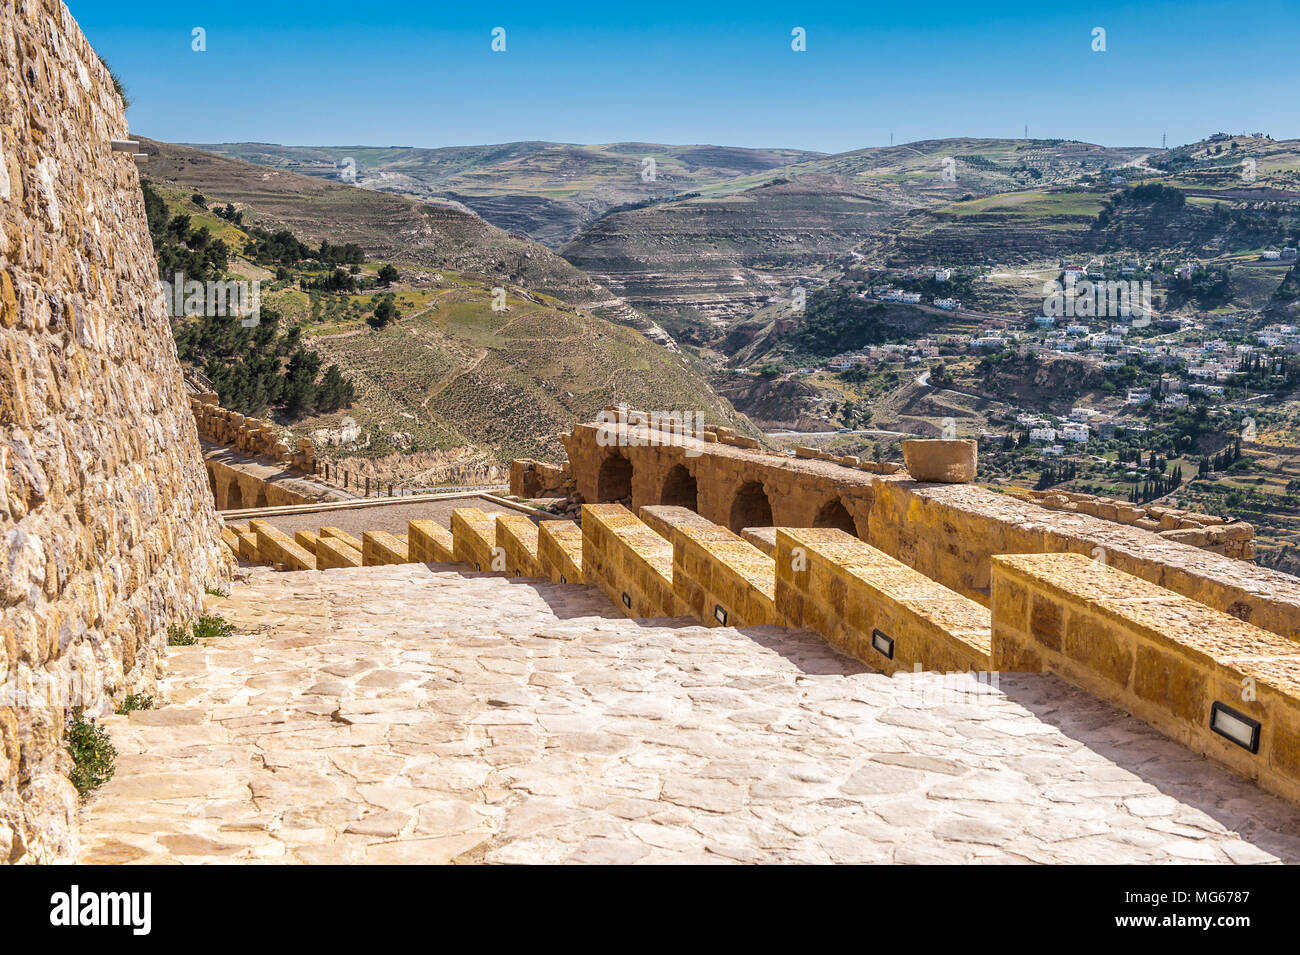 Lower court in the Kerak Castle, a large crusader castle in Kerak (Al Karak) in Jordan. Stock Photo